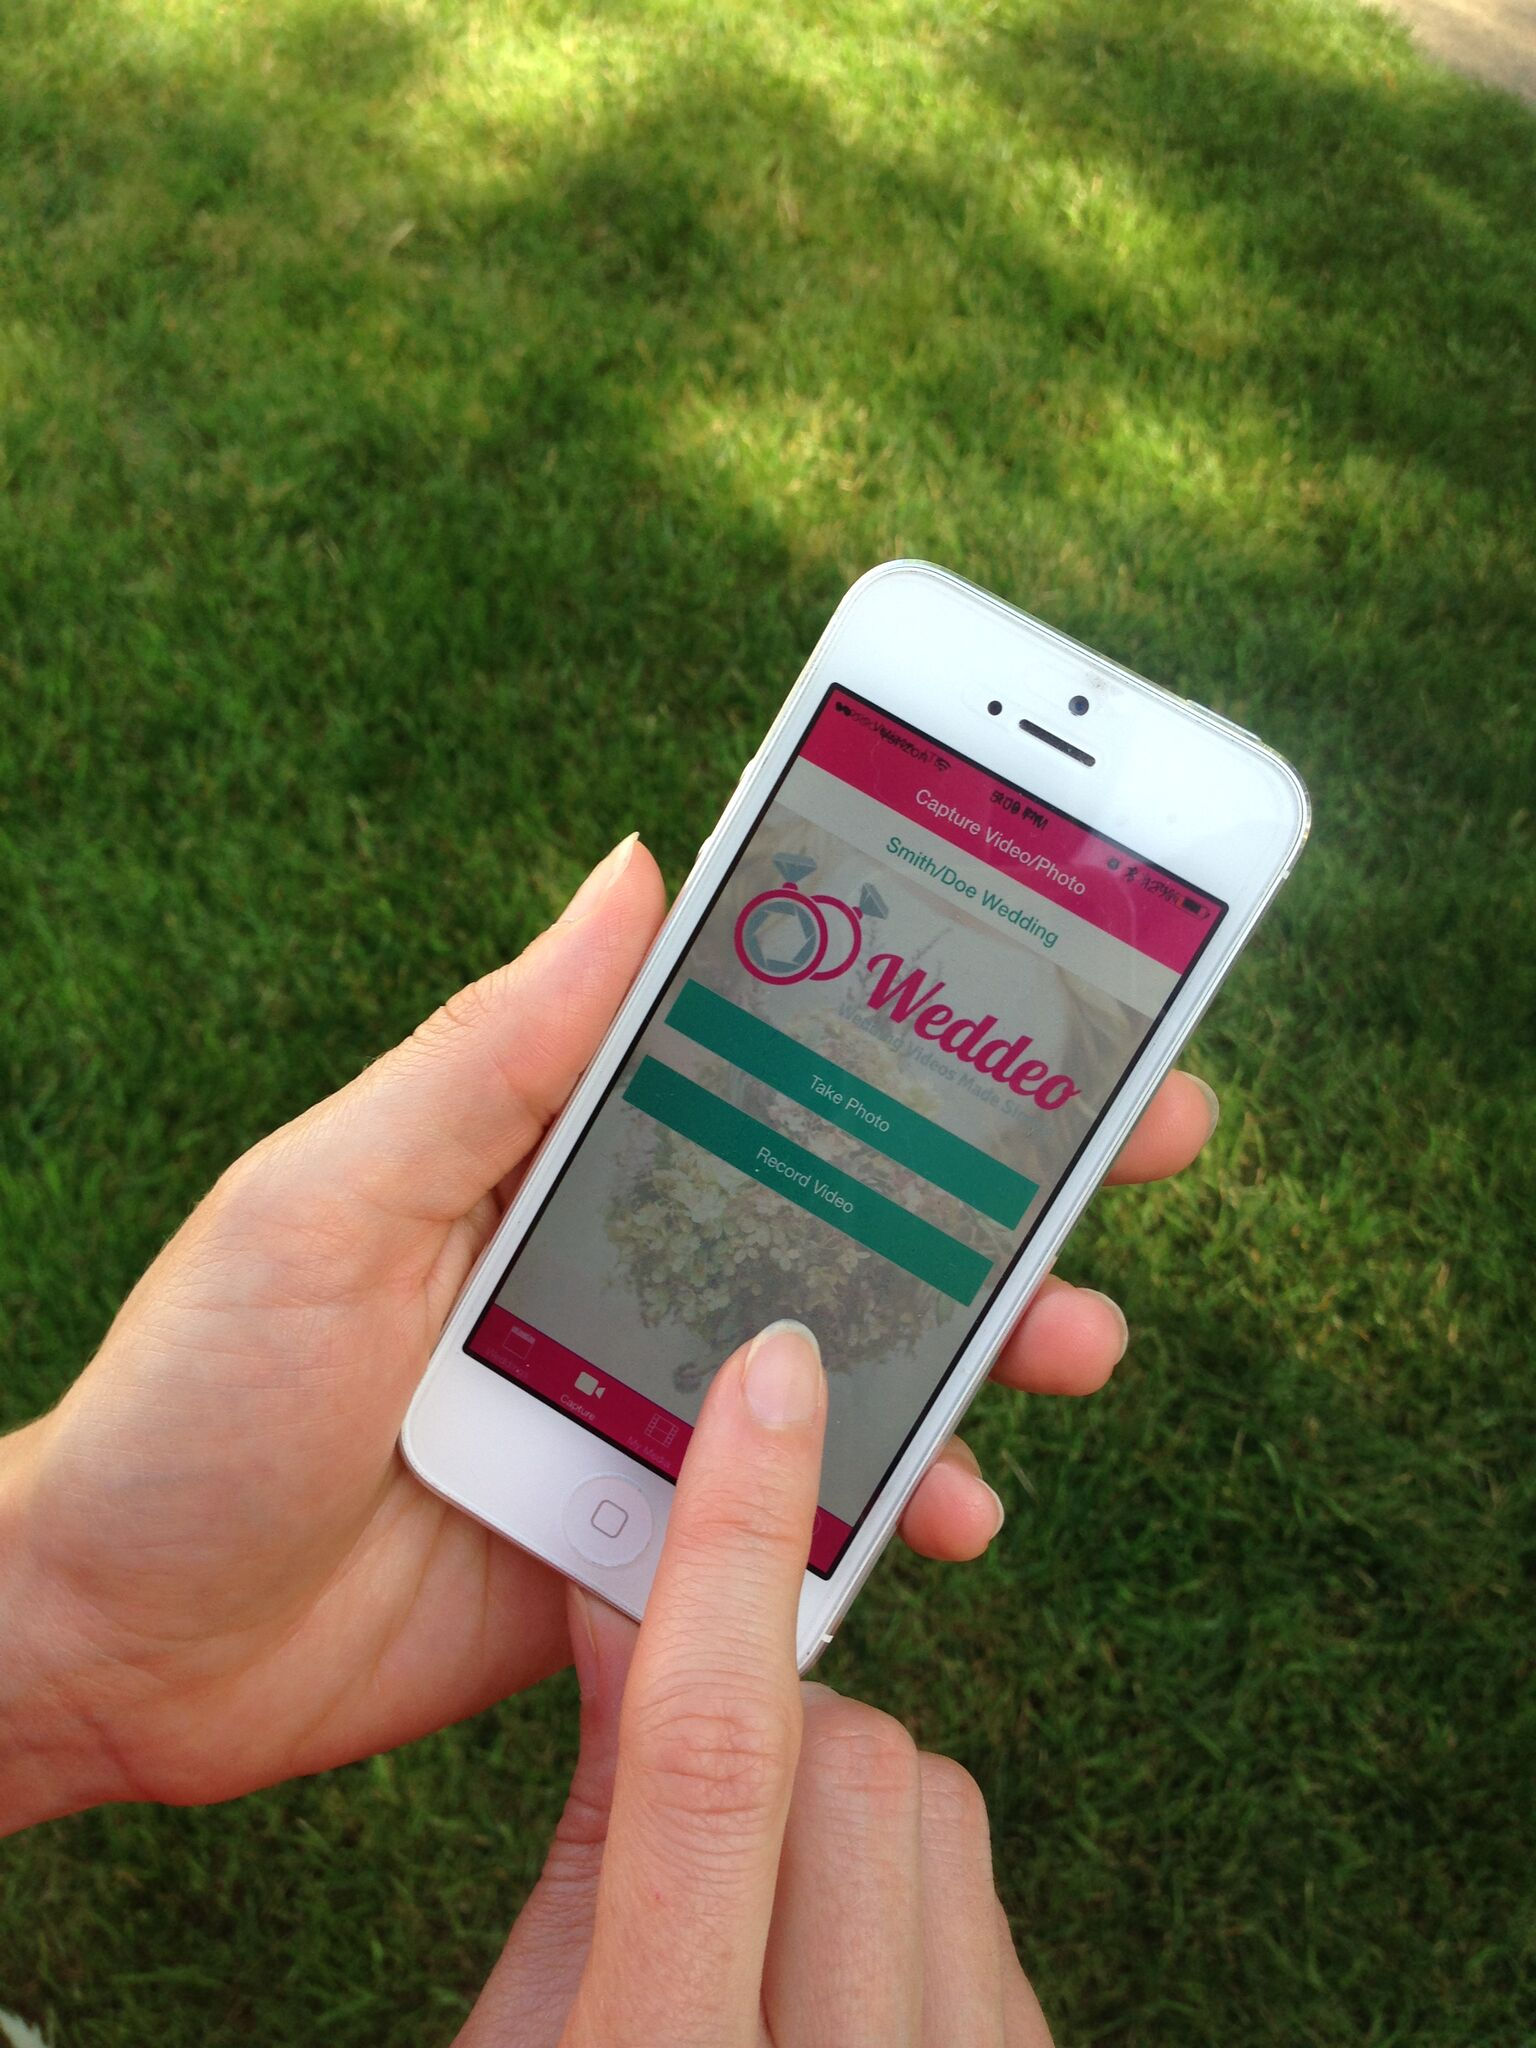 Announcing…the Weddeo app!